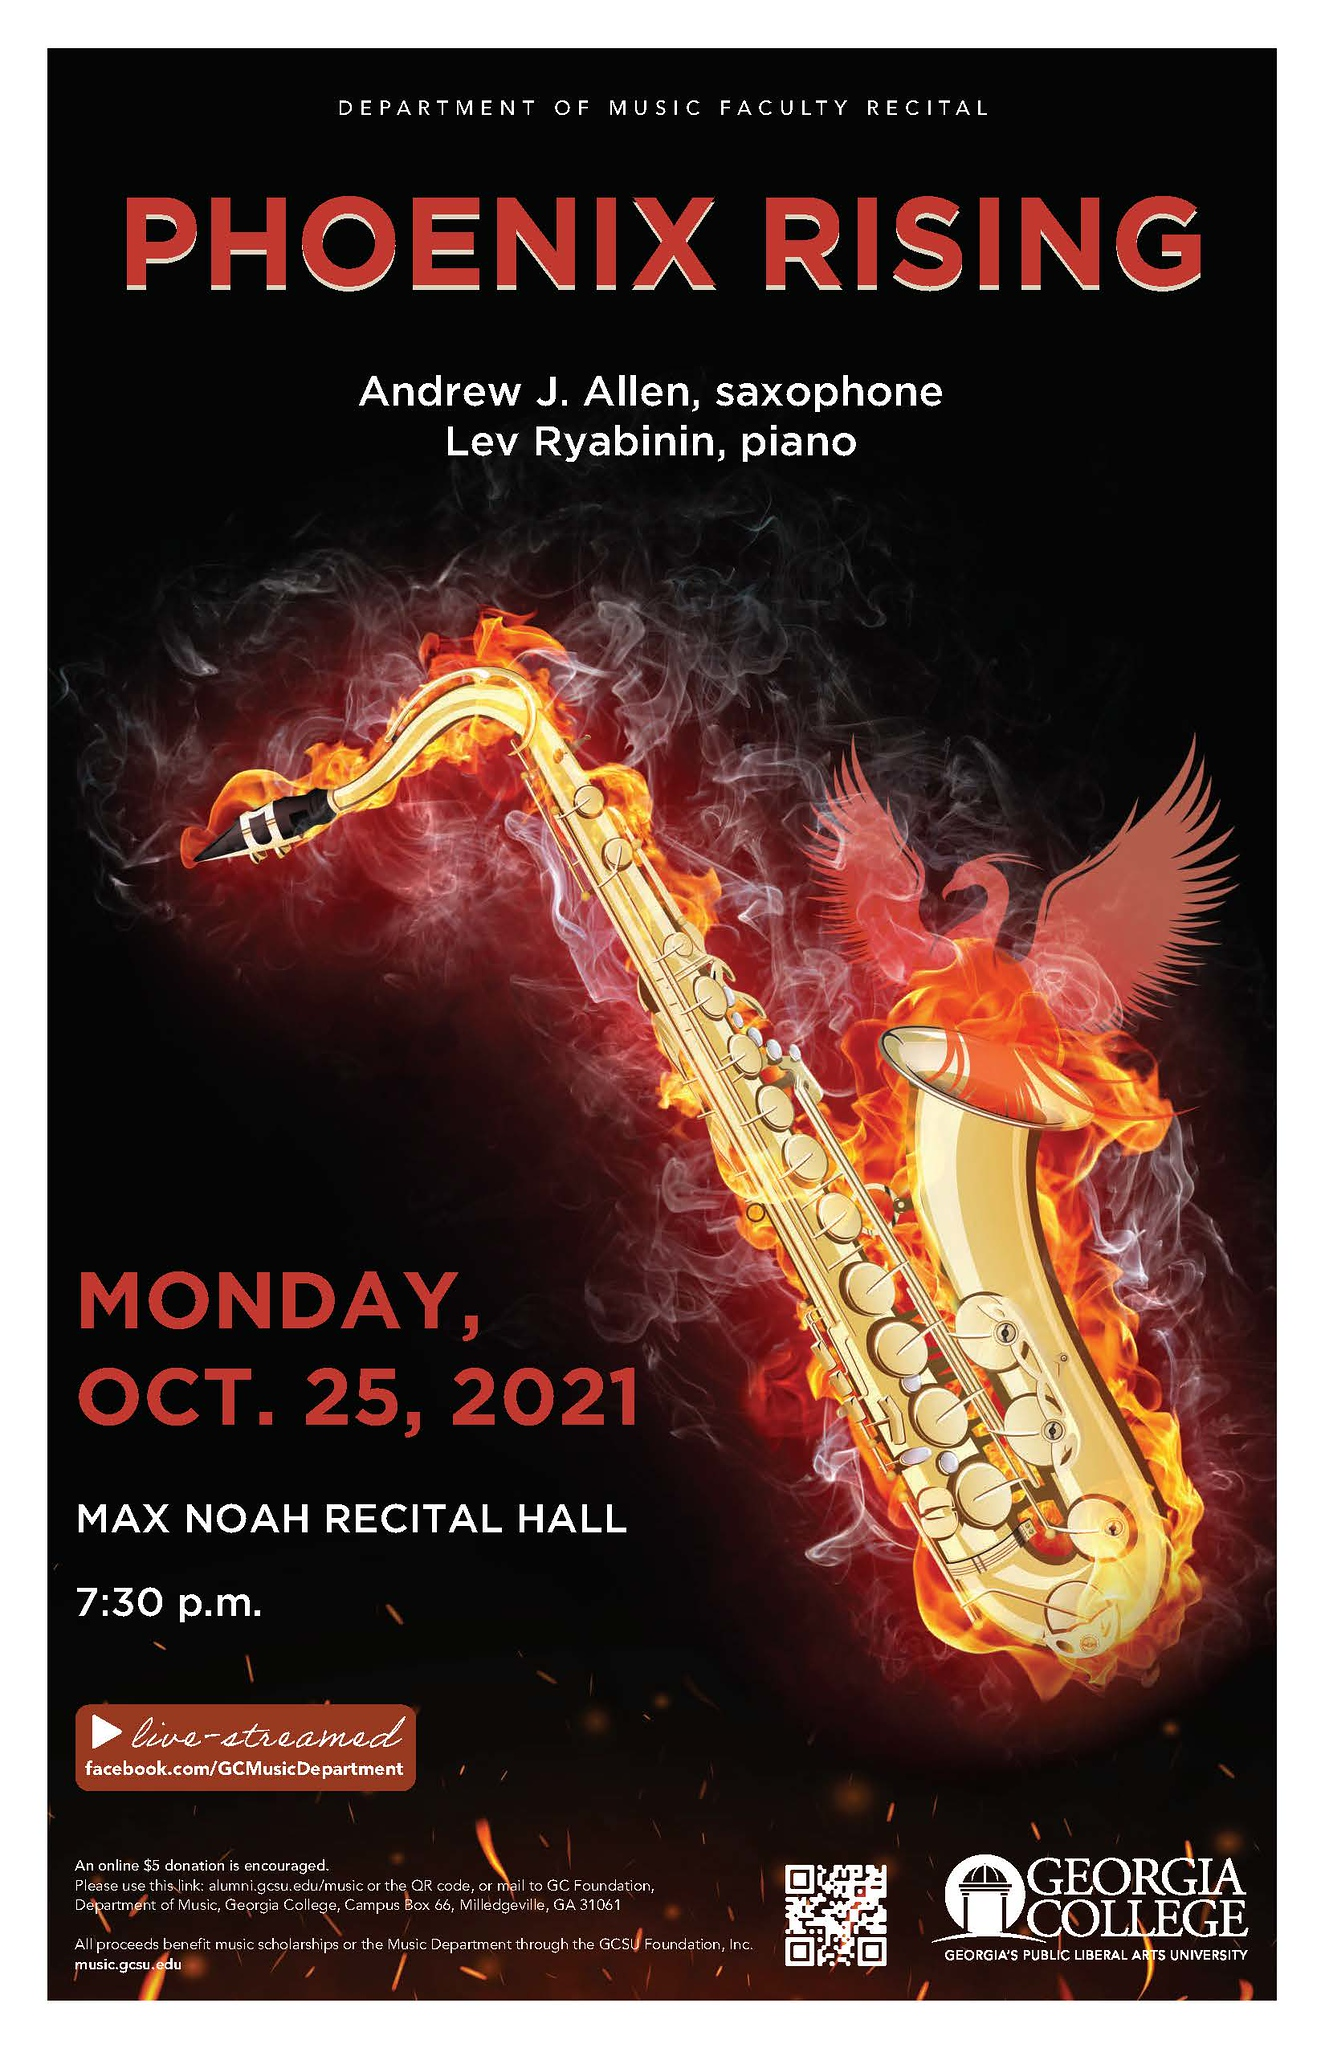 Please join us on Oct. 25 for this recital.